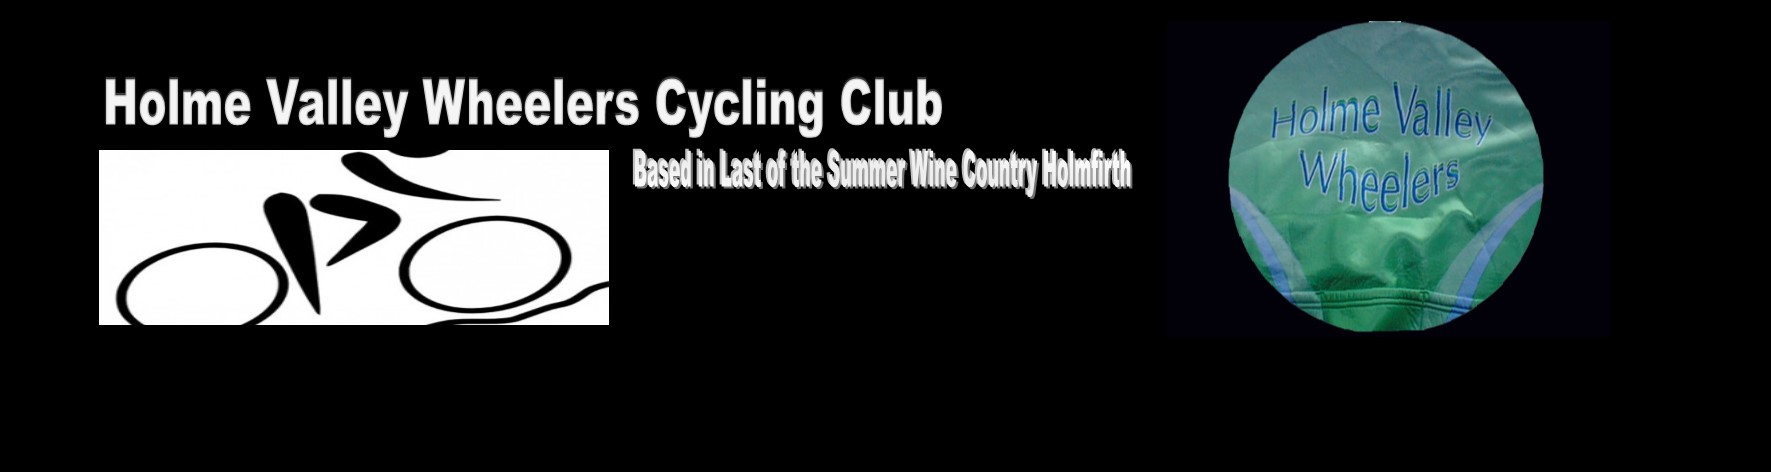 Holme Valley Wheelers Cycling Club